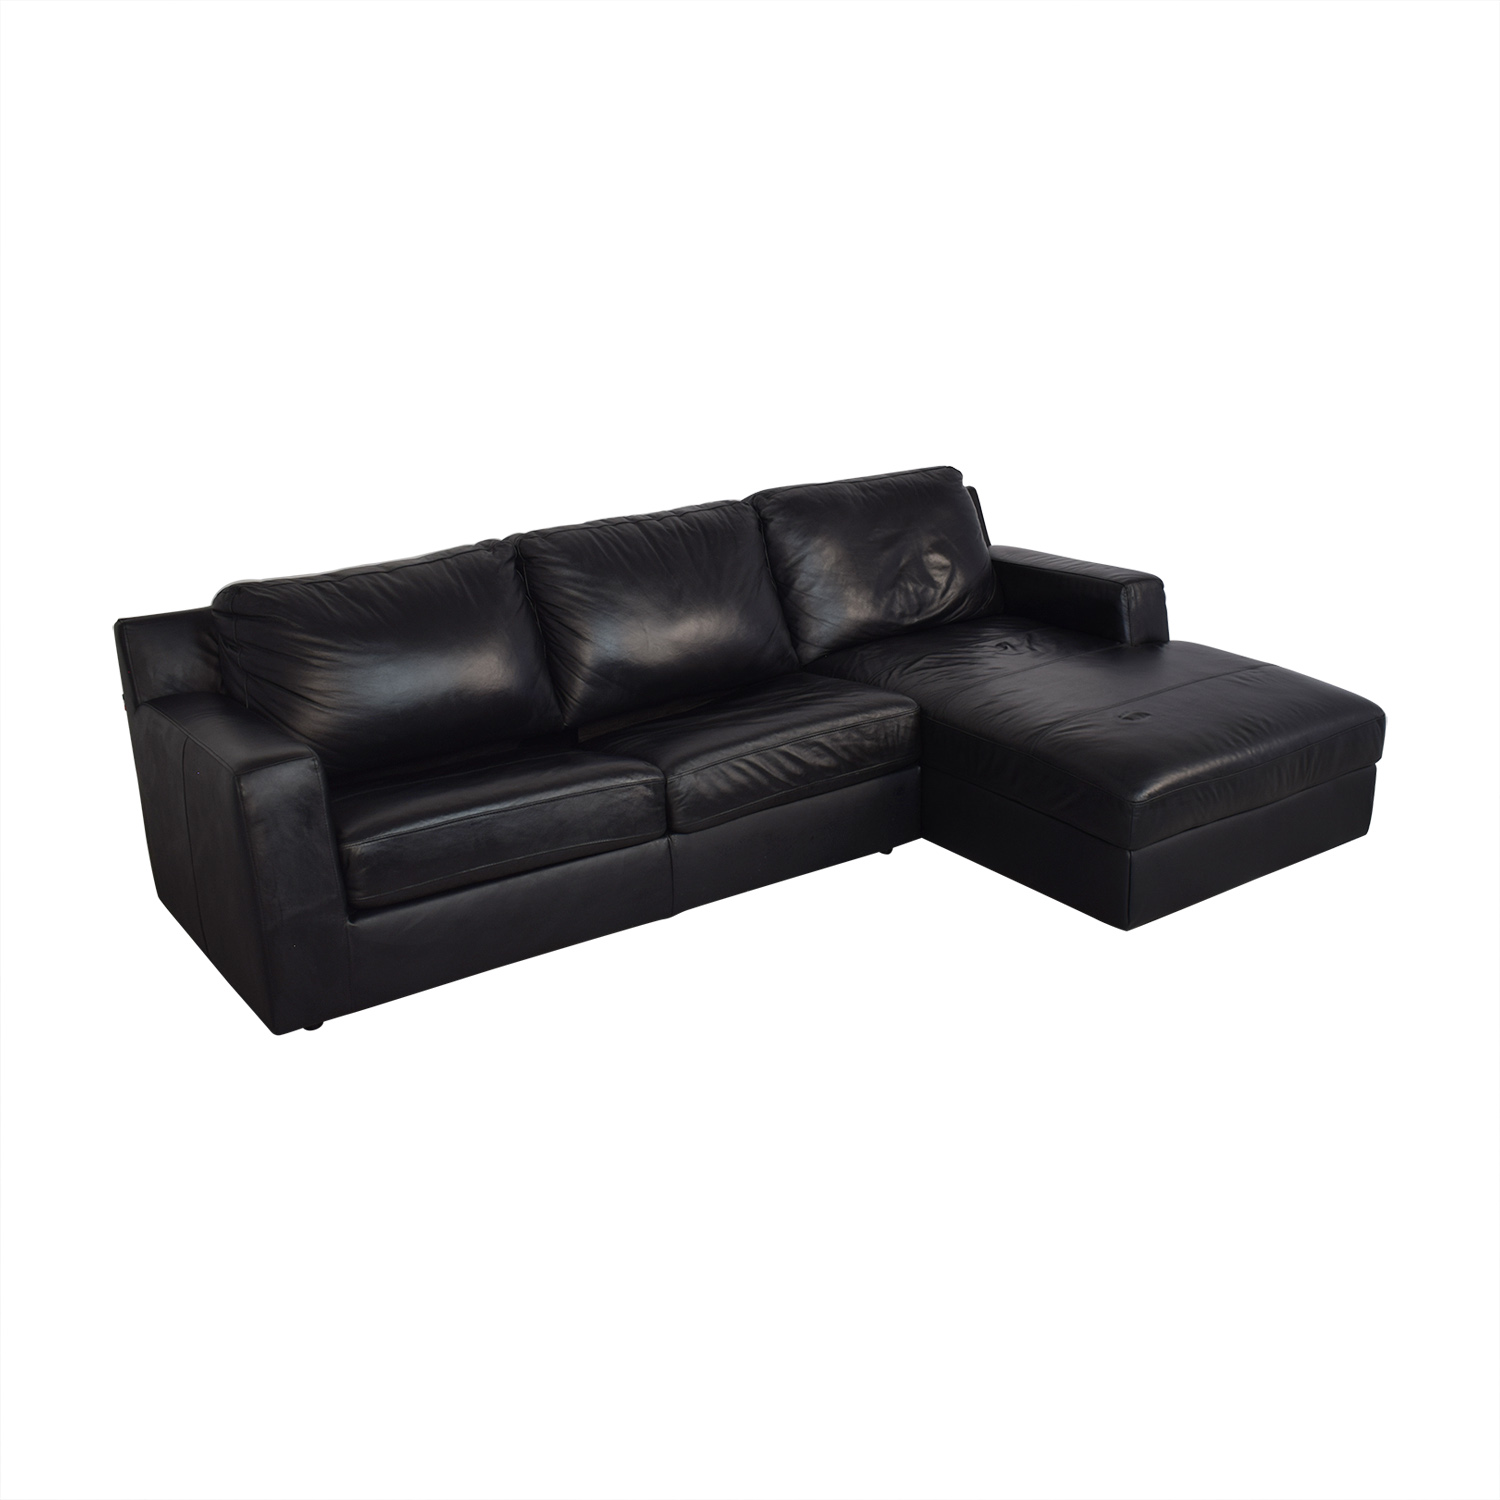 J&M Furniture Elizabeth Sleeper Sectional Sofa J&M Furniture